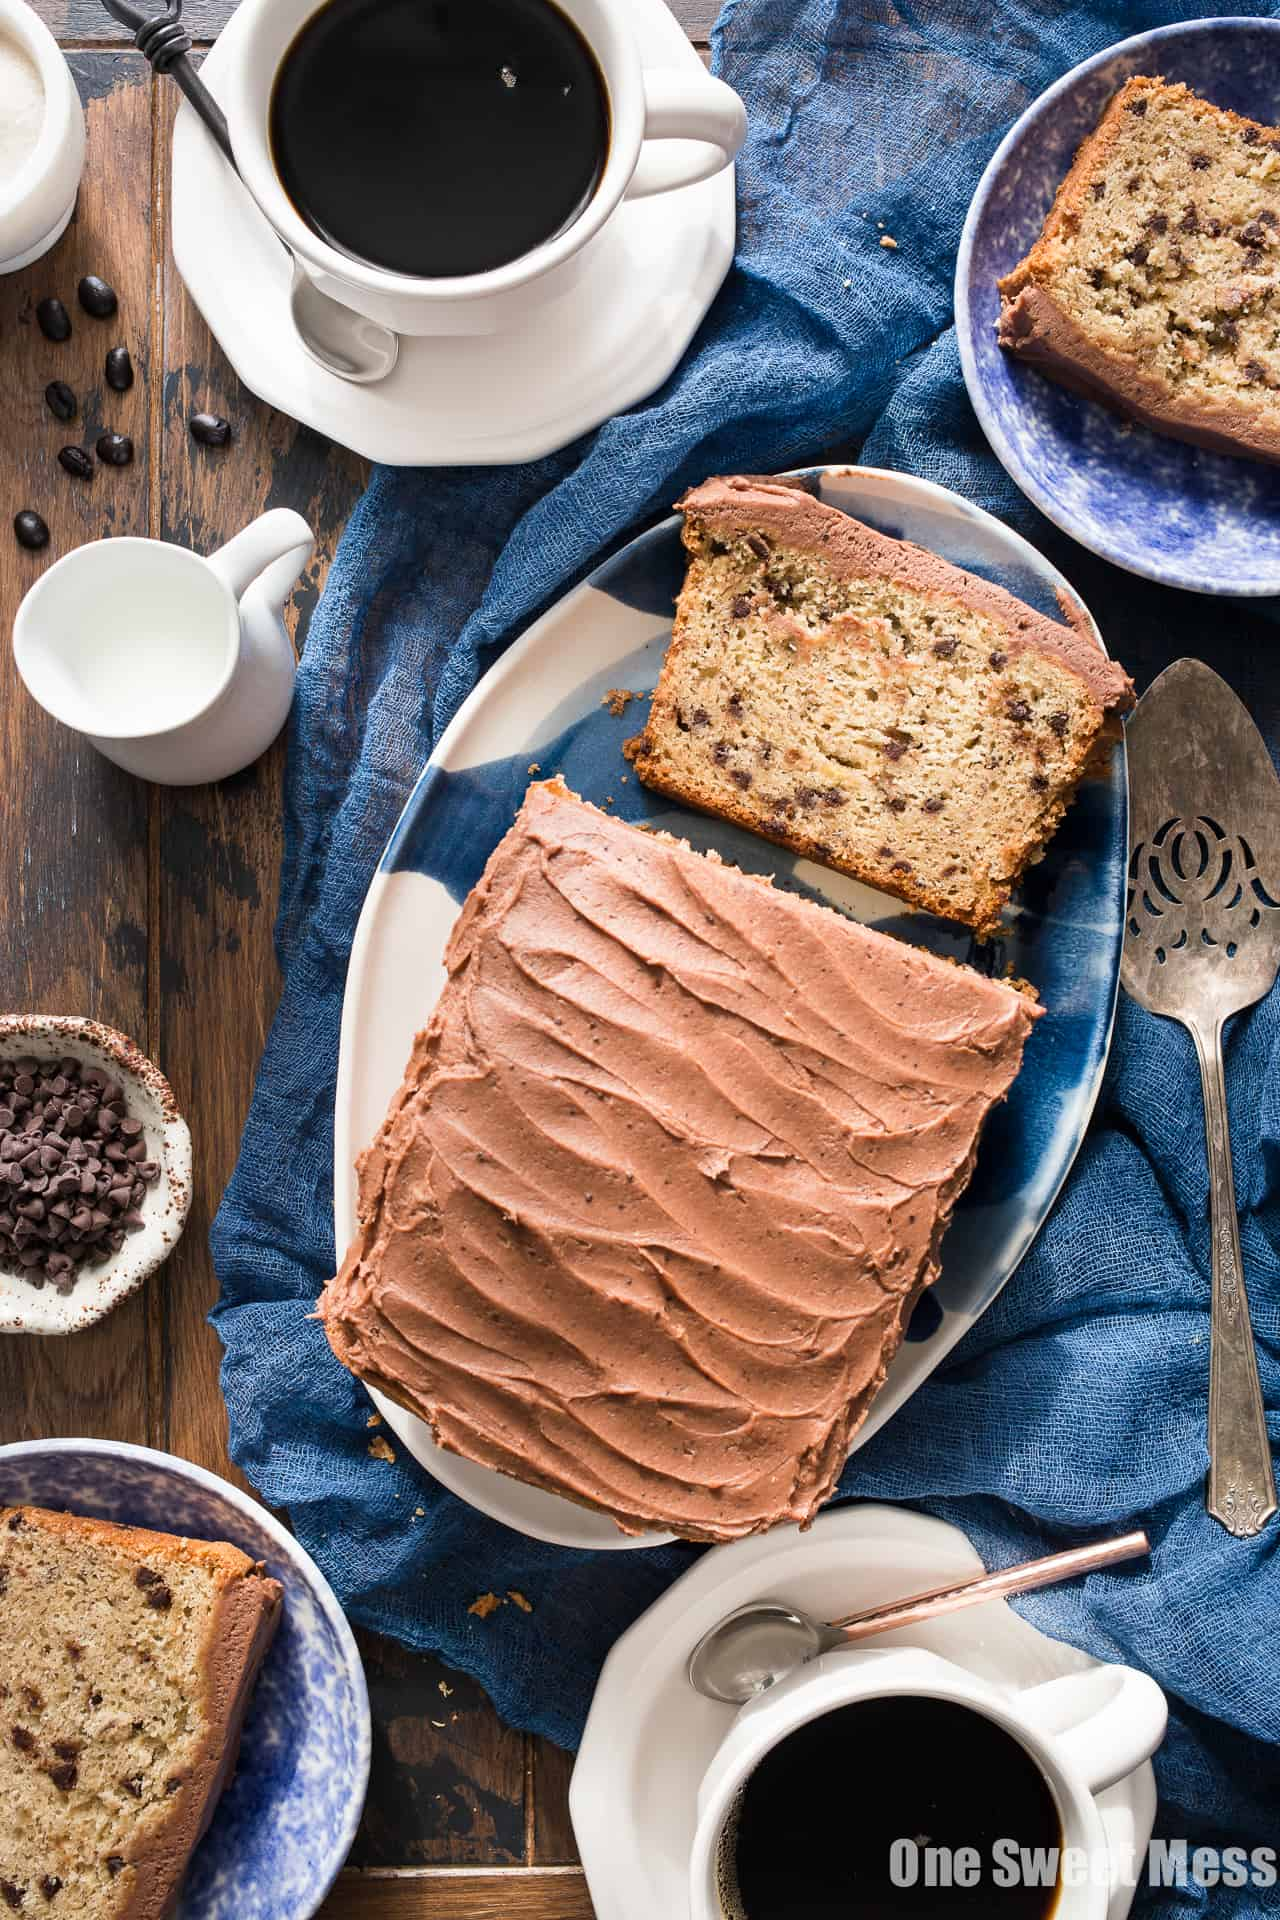 Gluten-Free Chocolate Chip Banana Bread with Mocha Buttercream